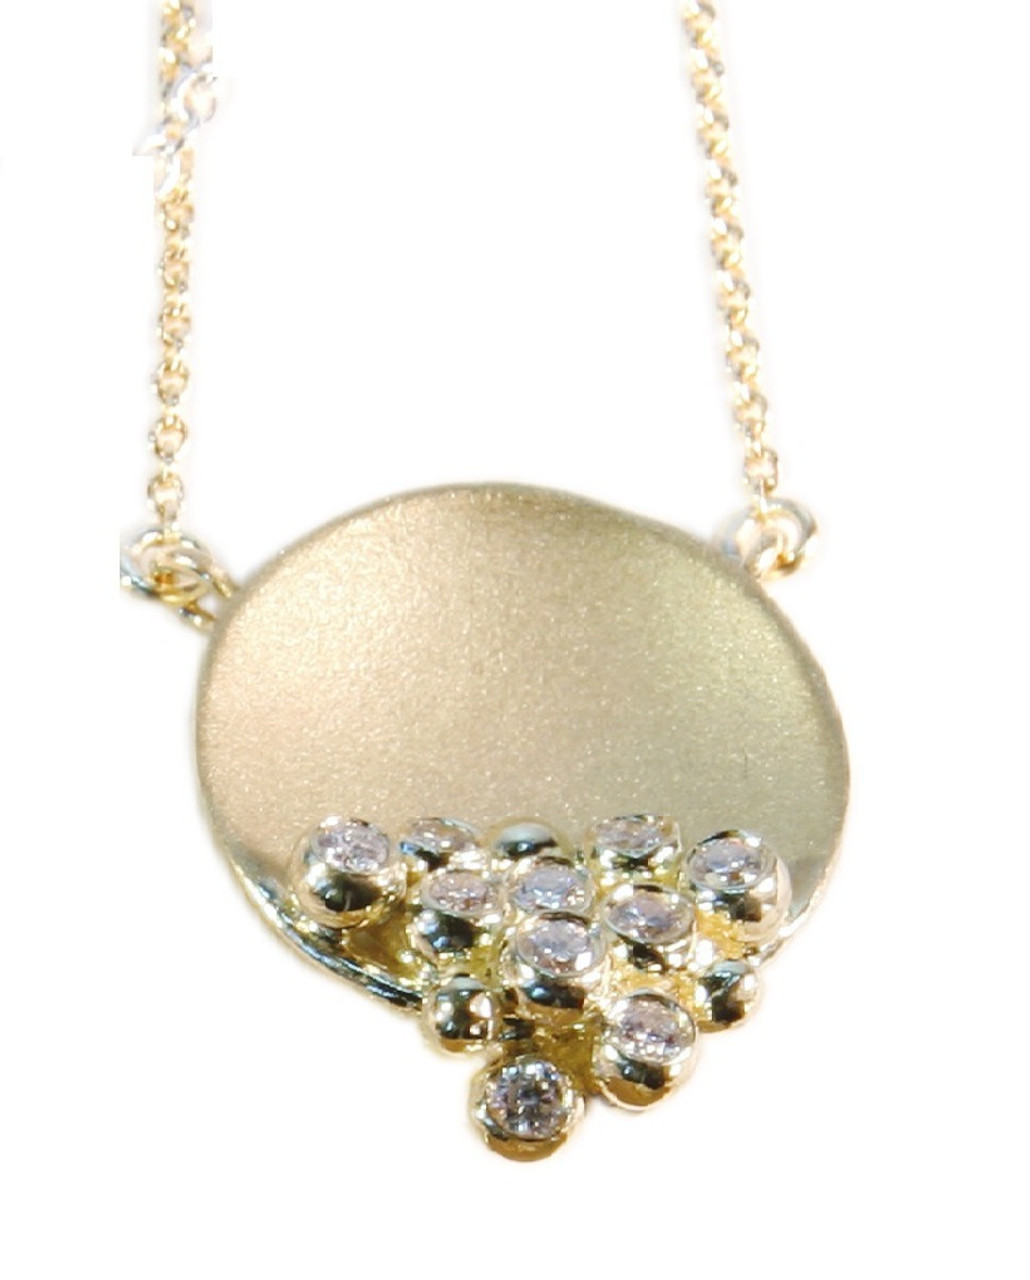 Bowl of Overflowing diamonds.  Necklace in gold and diamonds.